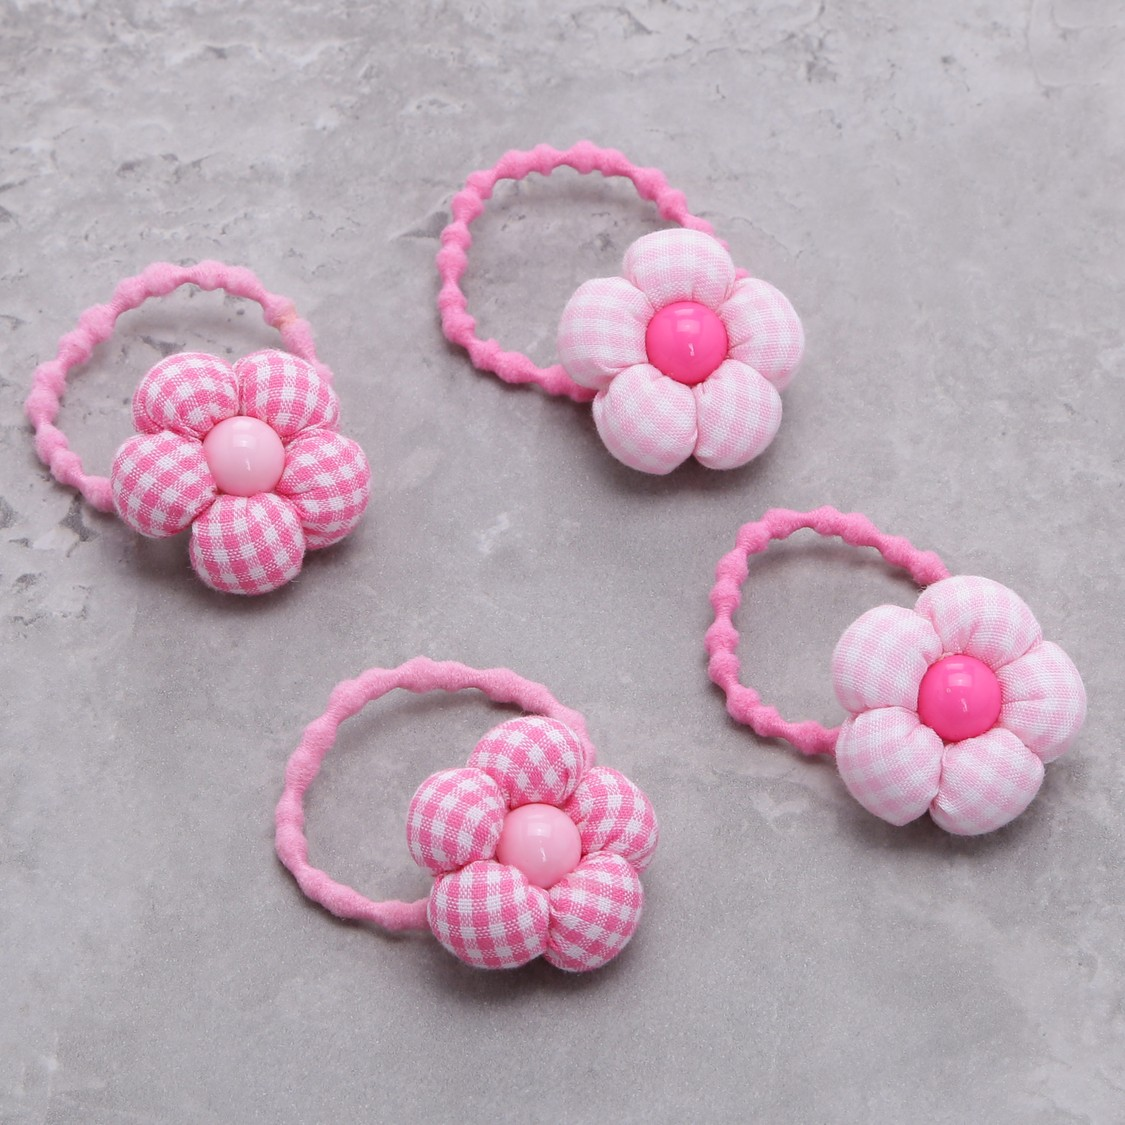 Flower Applique Hair Tie - Set of 4